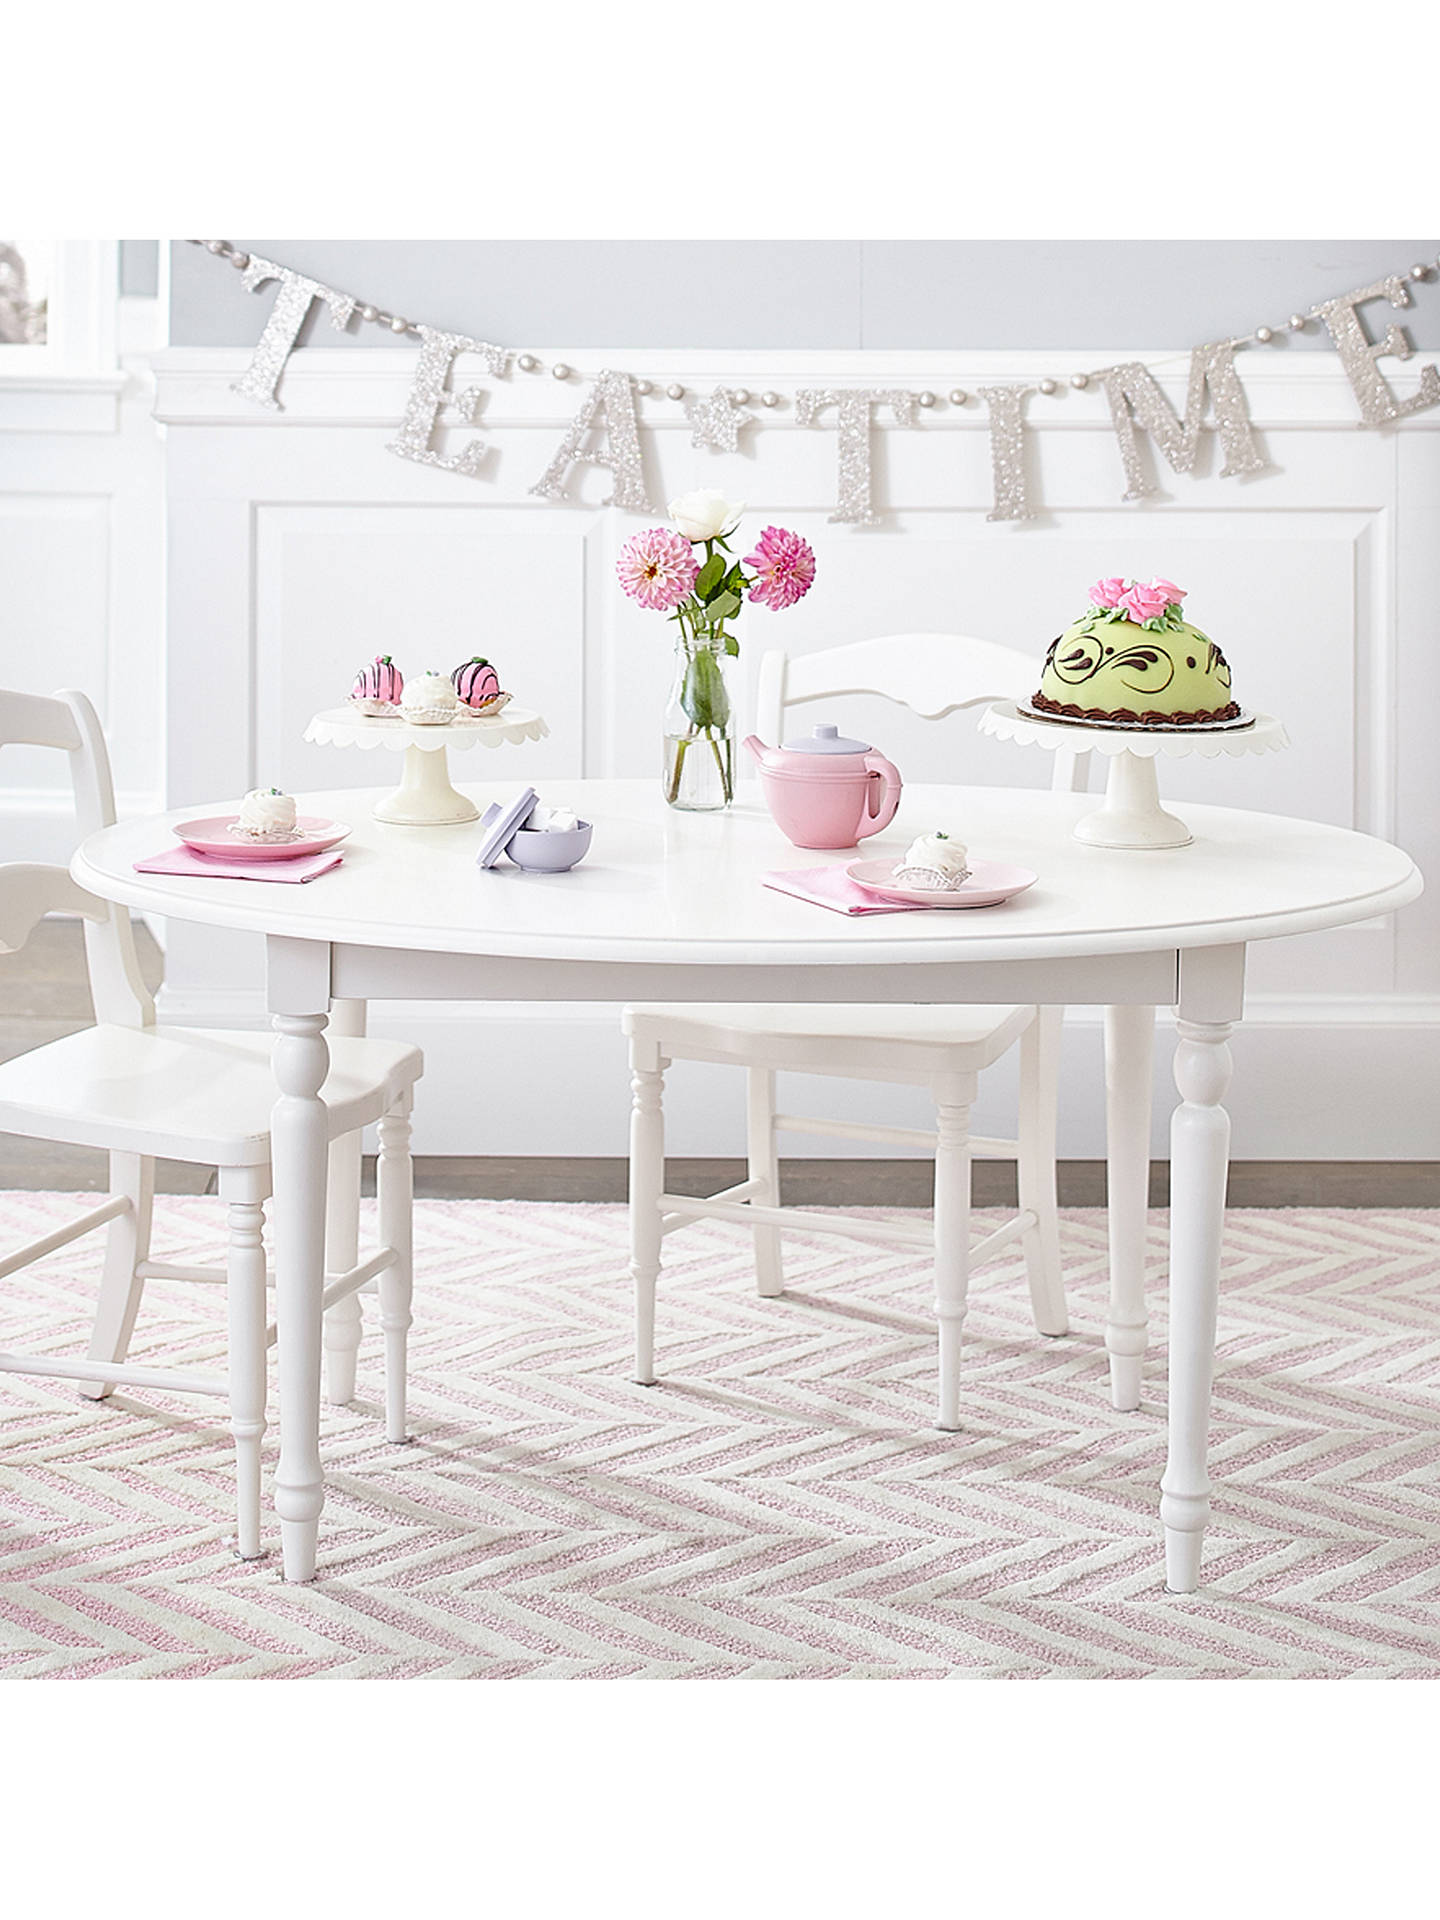 Buy Pottery Barn Kids Finley Play Table, Vintage White Online at johnlewis.com